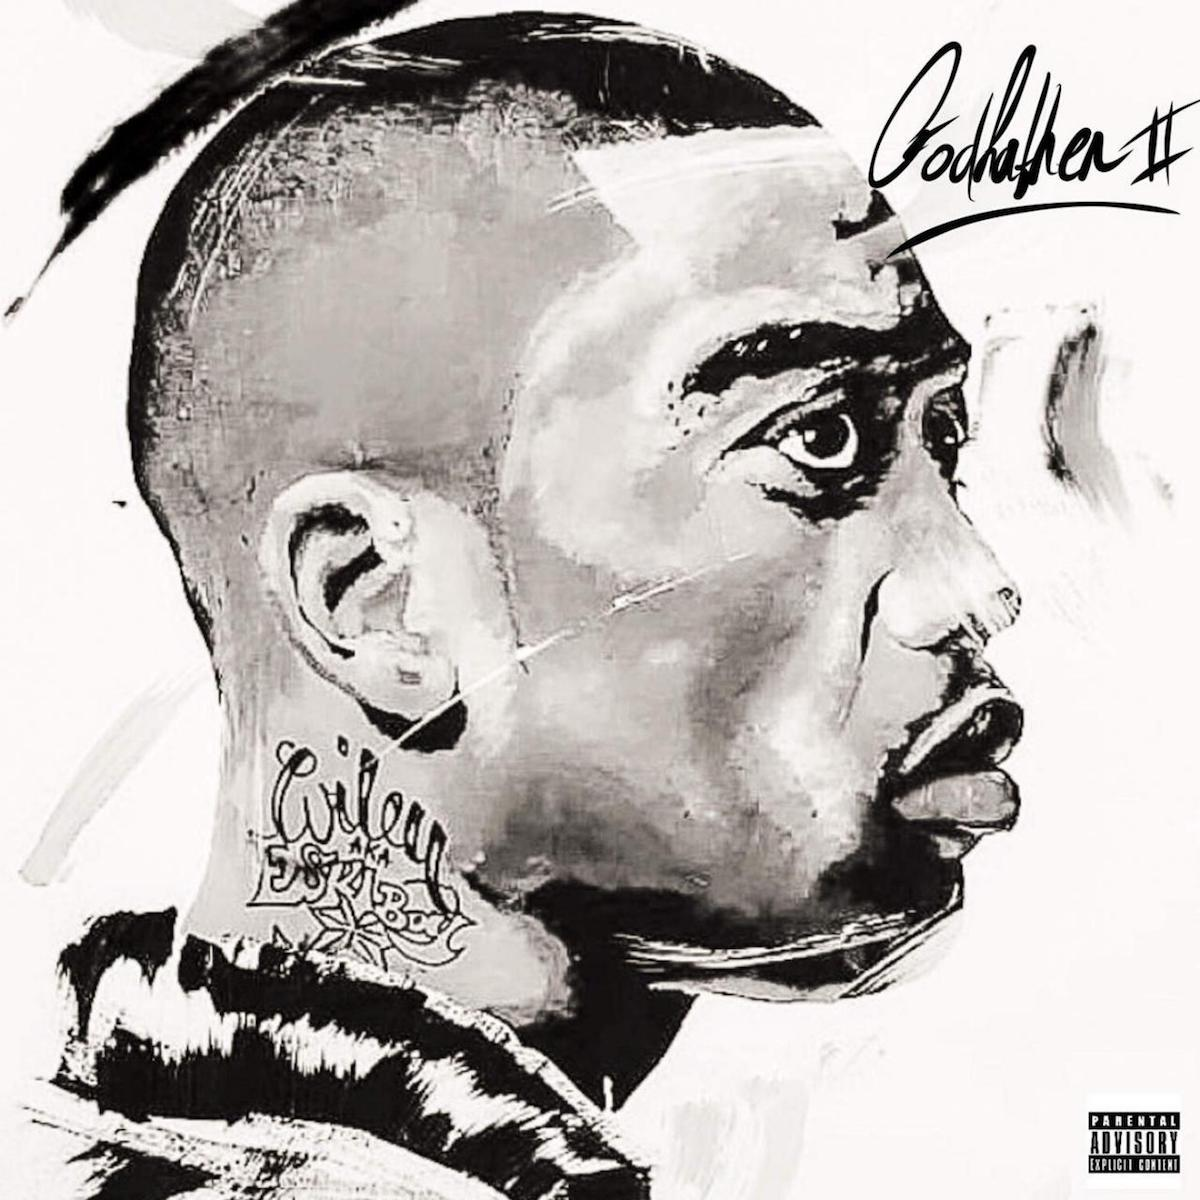 Stop Everything Because Wiley's 'Godfather II' Has Actually Been Released